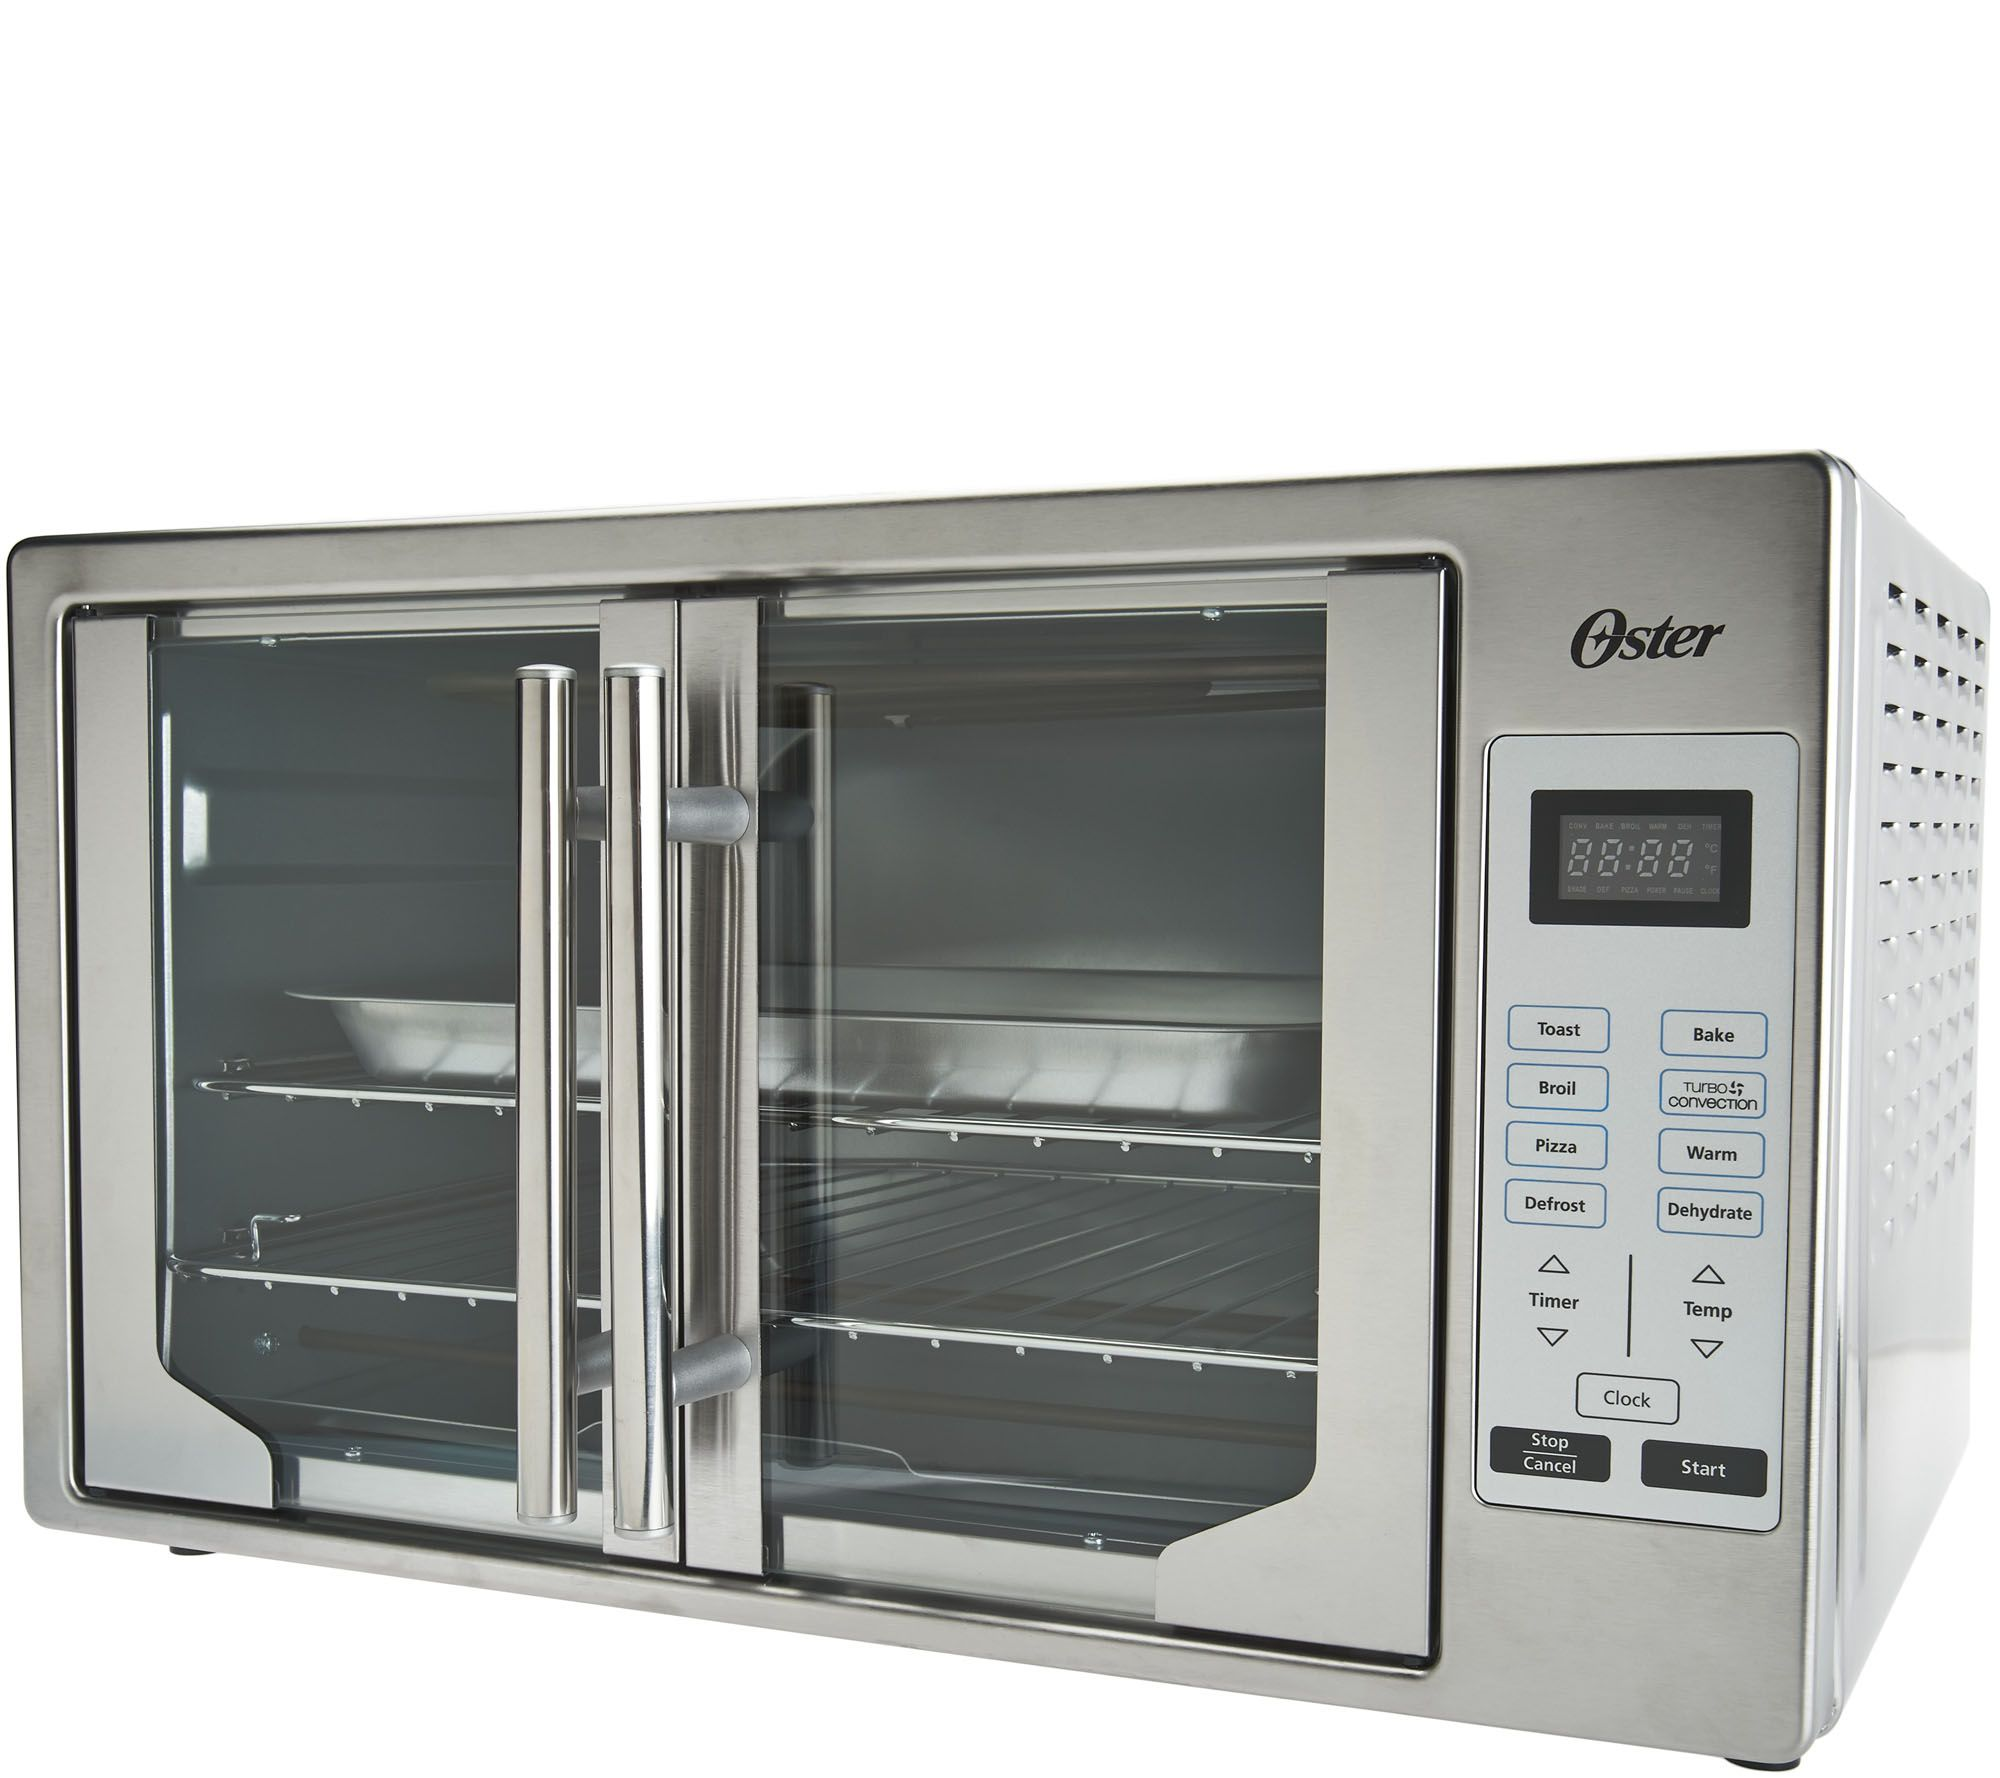 Convention Oven Oster Convection Microwave Bestmicrowave